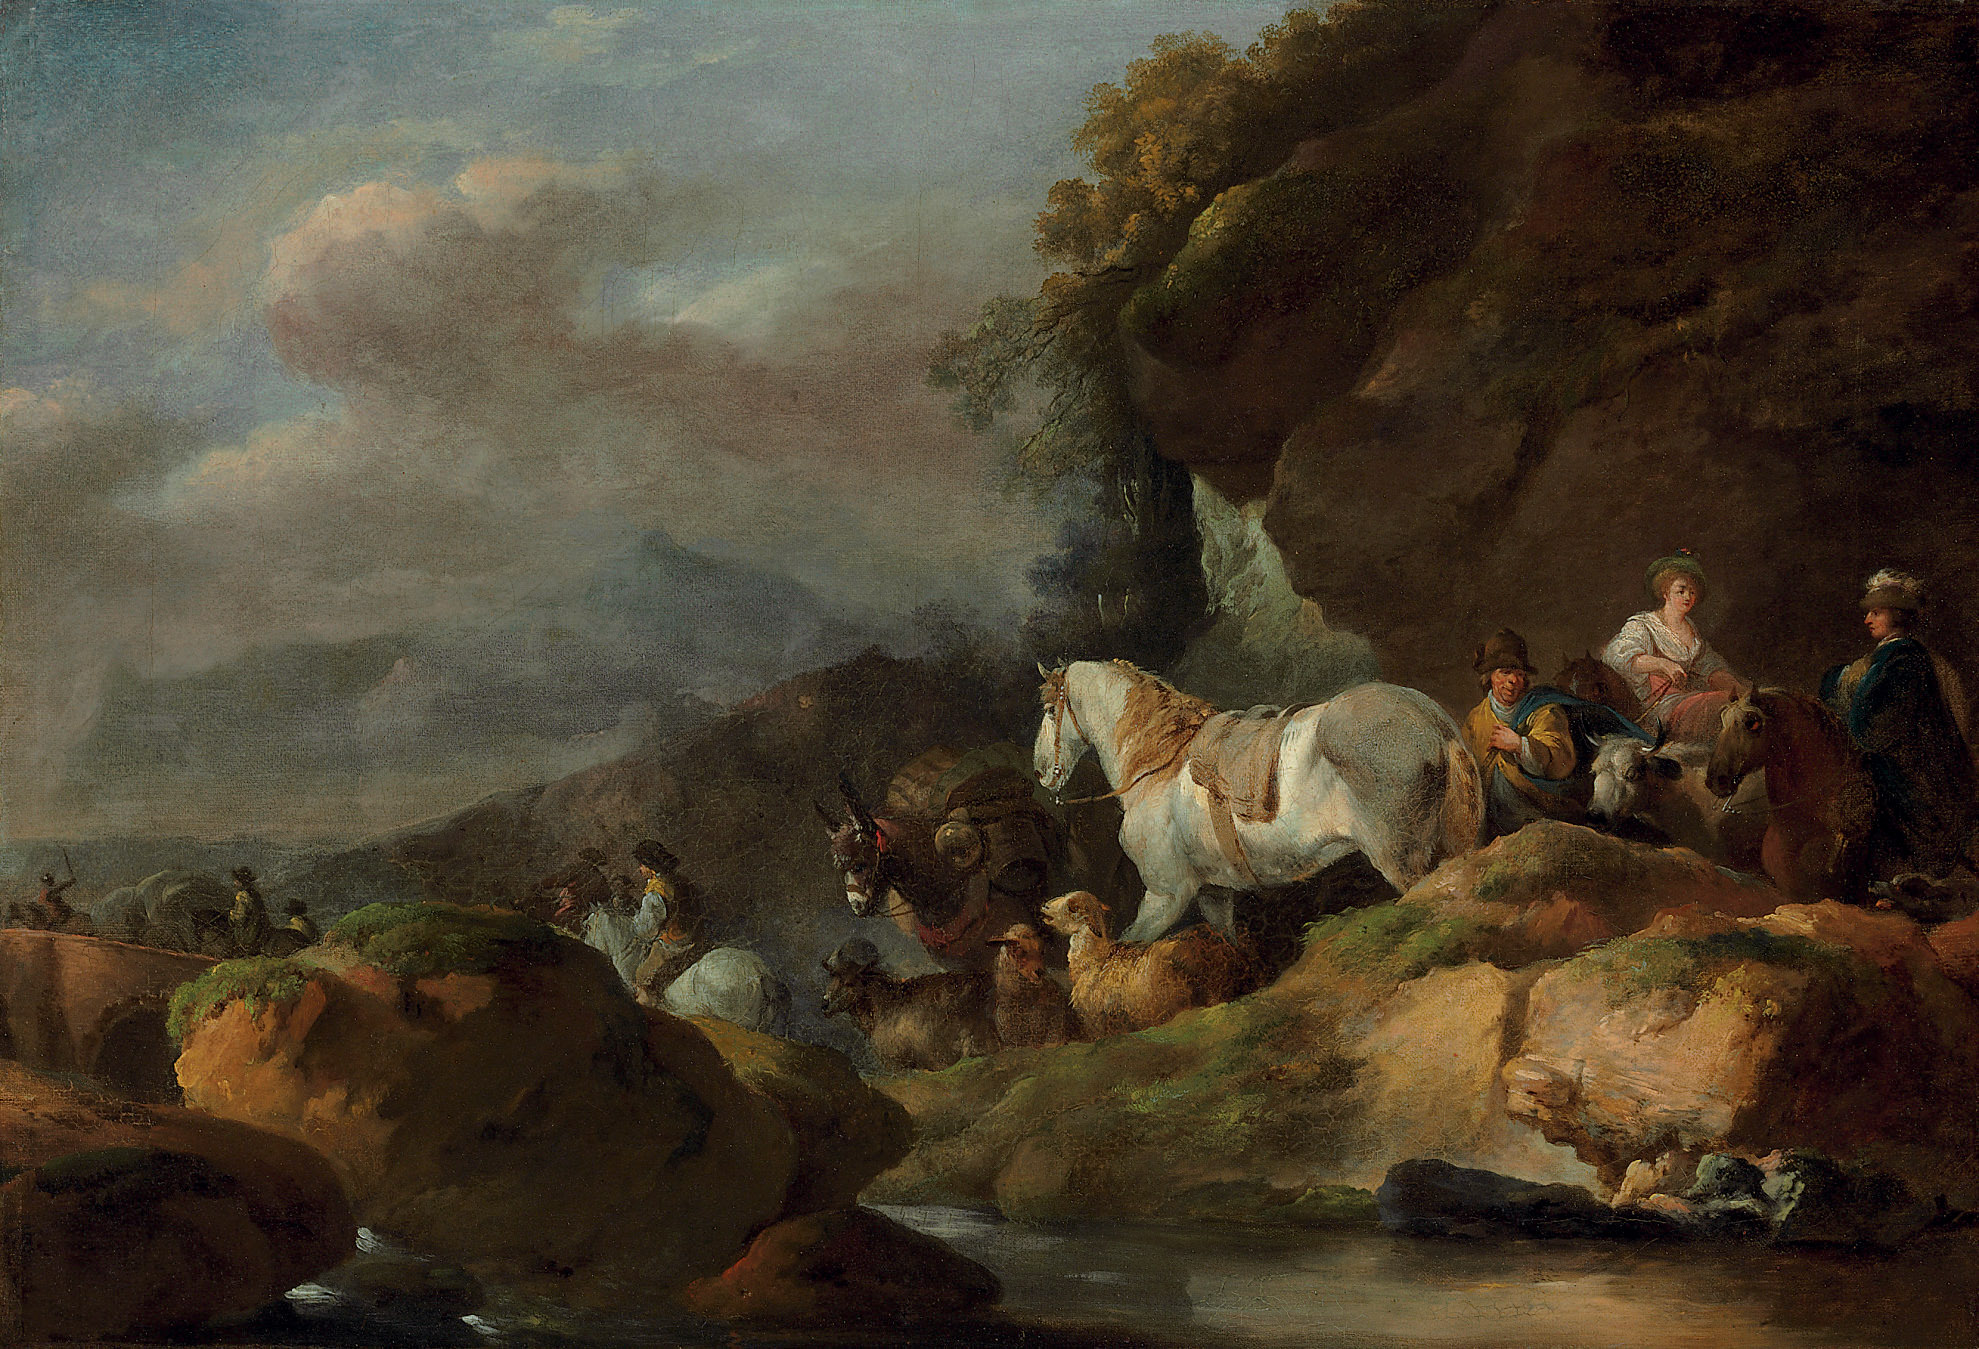 A herder and travelers on a mountain pass near a stream